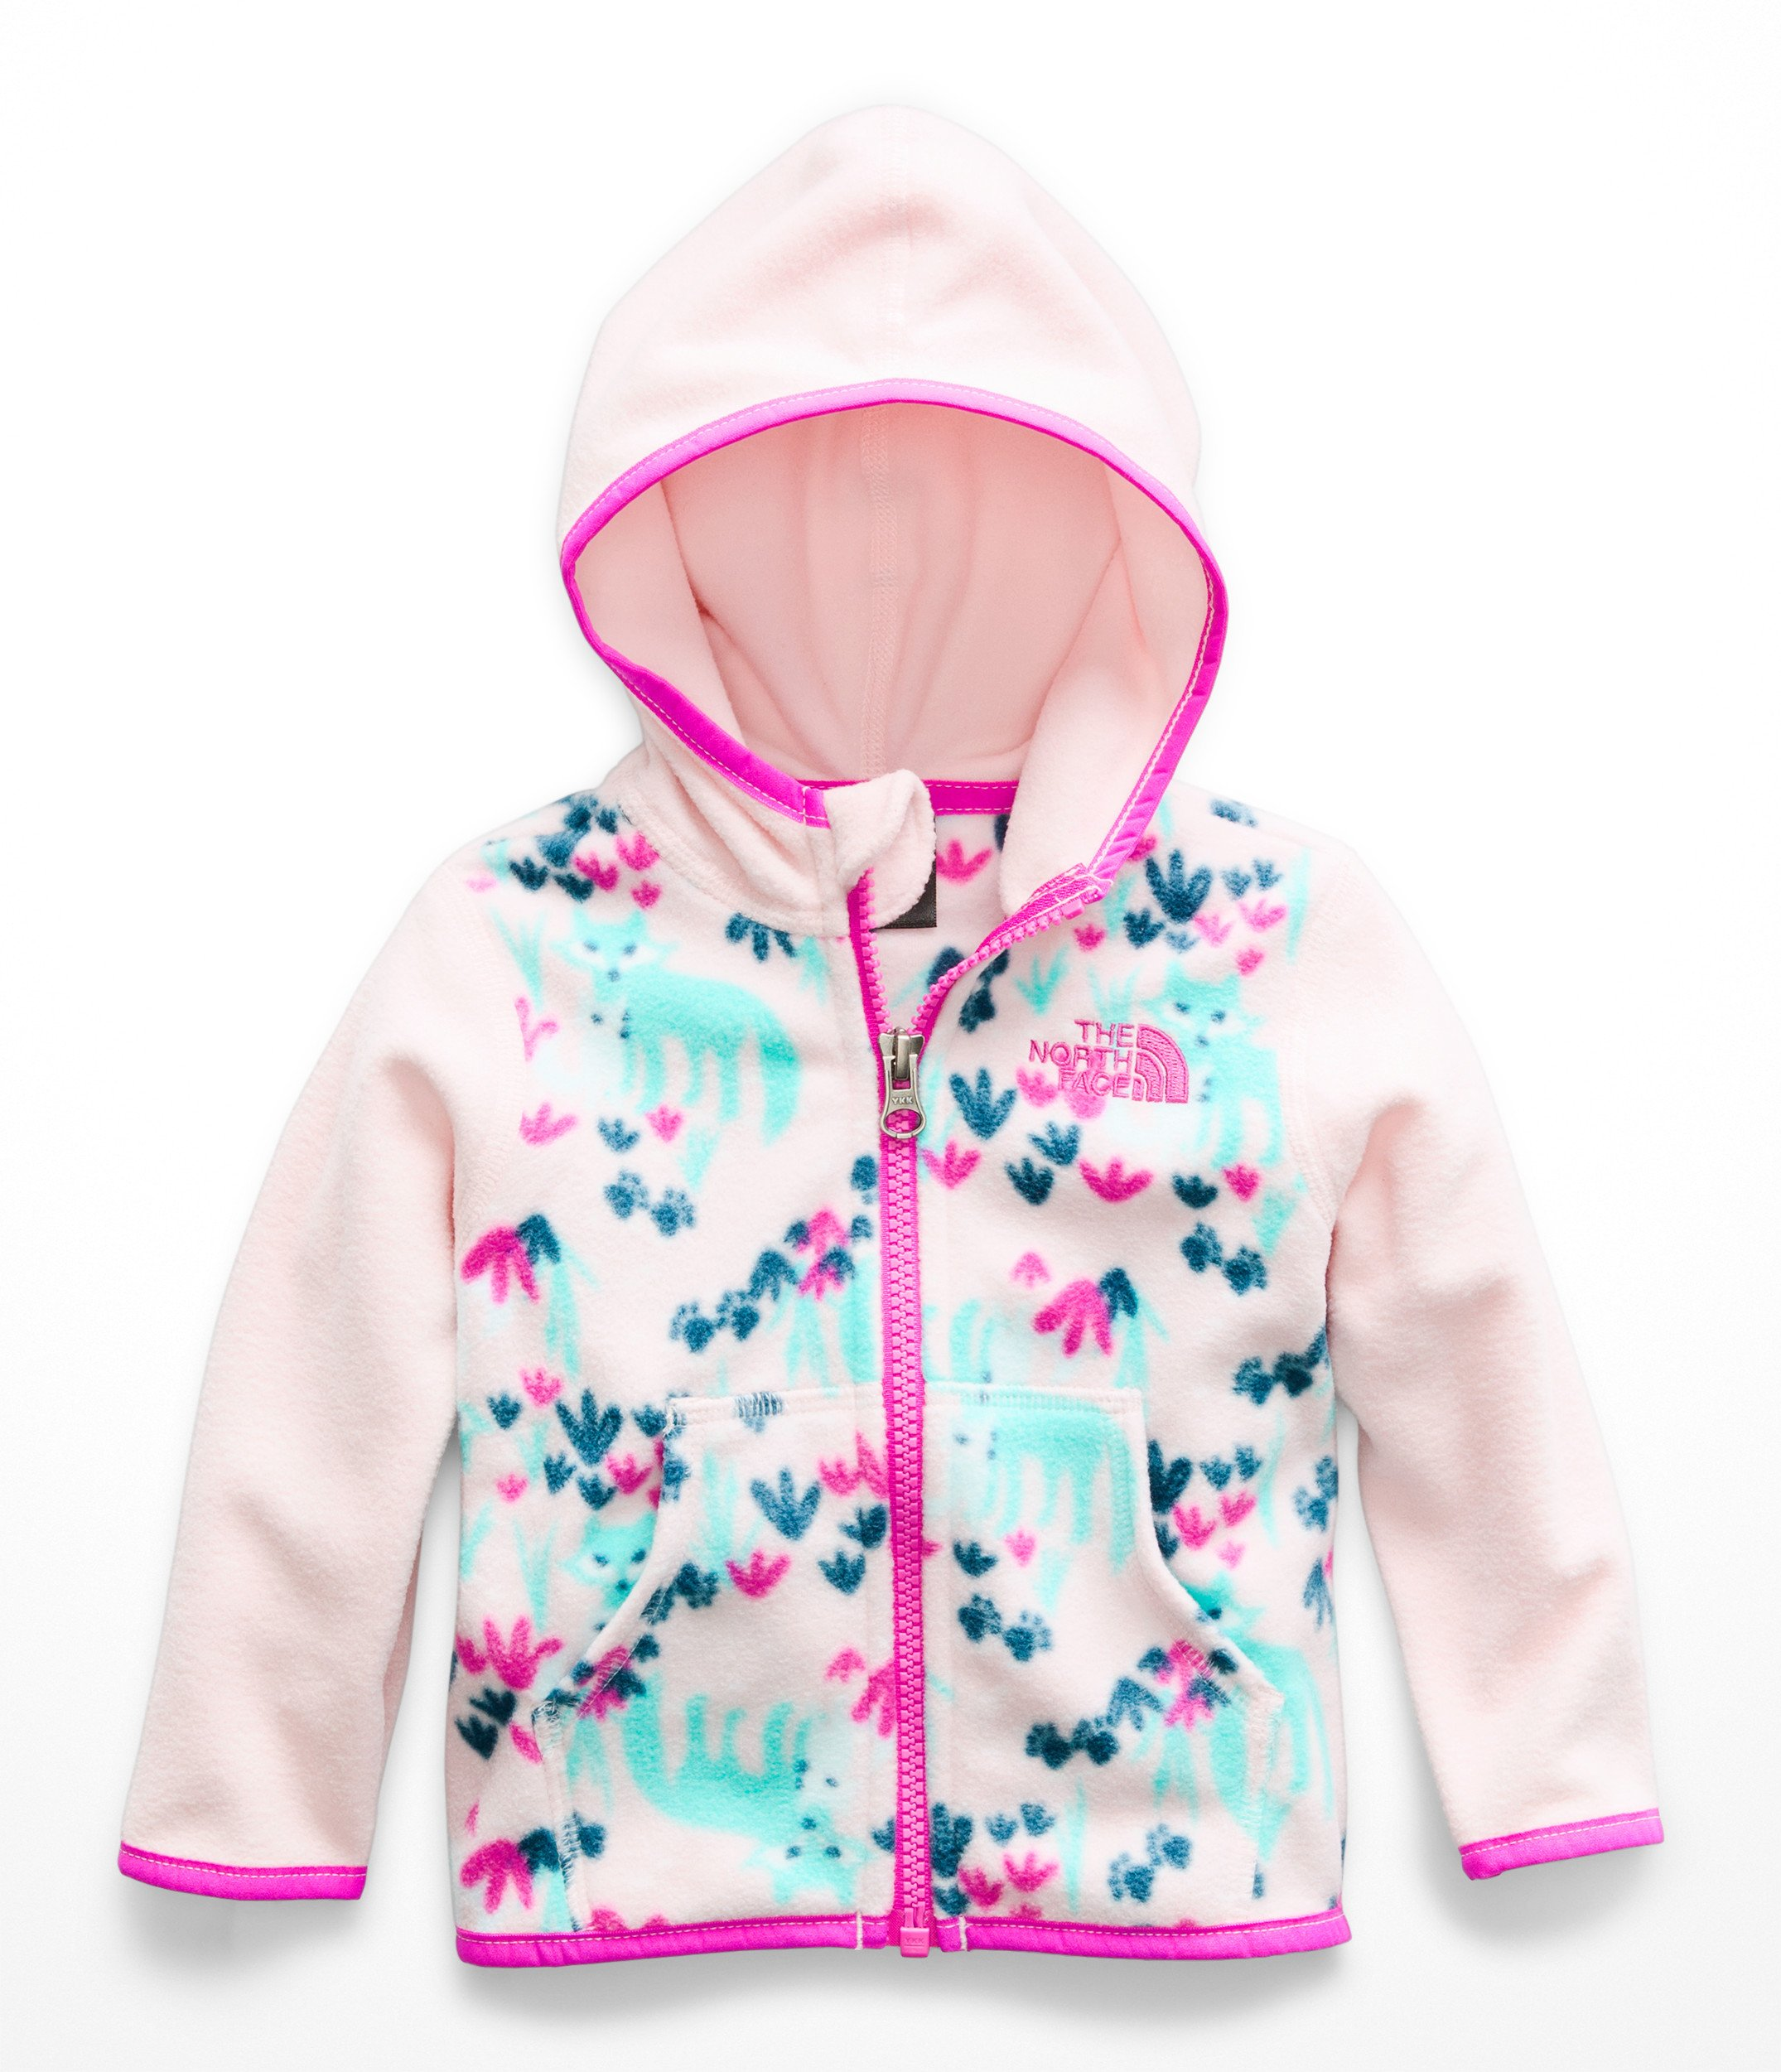 64096413a The North Face Kids Baby Girl's Glacier Full Zip Hoodie (Infant) Purdy Pink  Fox Floral Print 0-3 Months